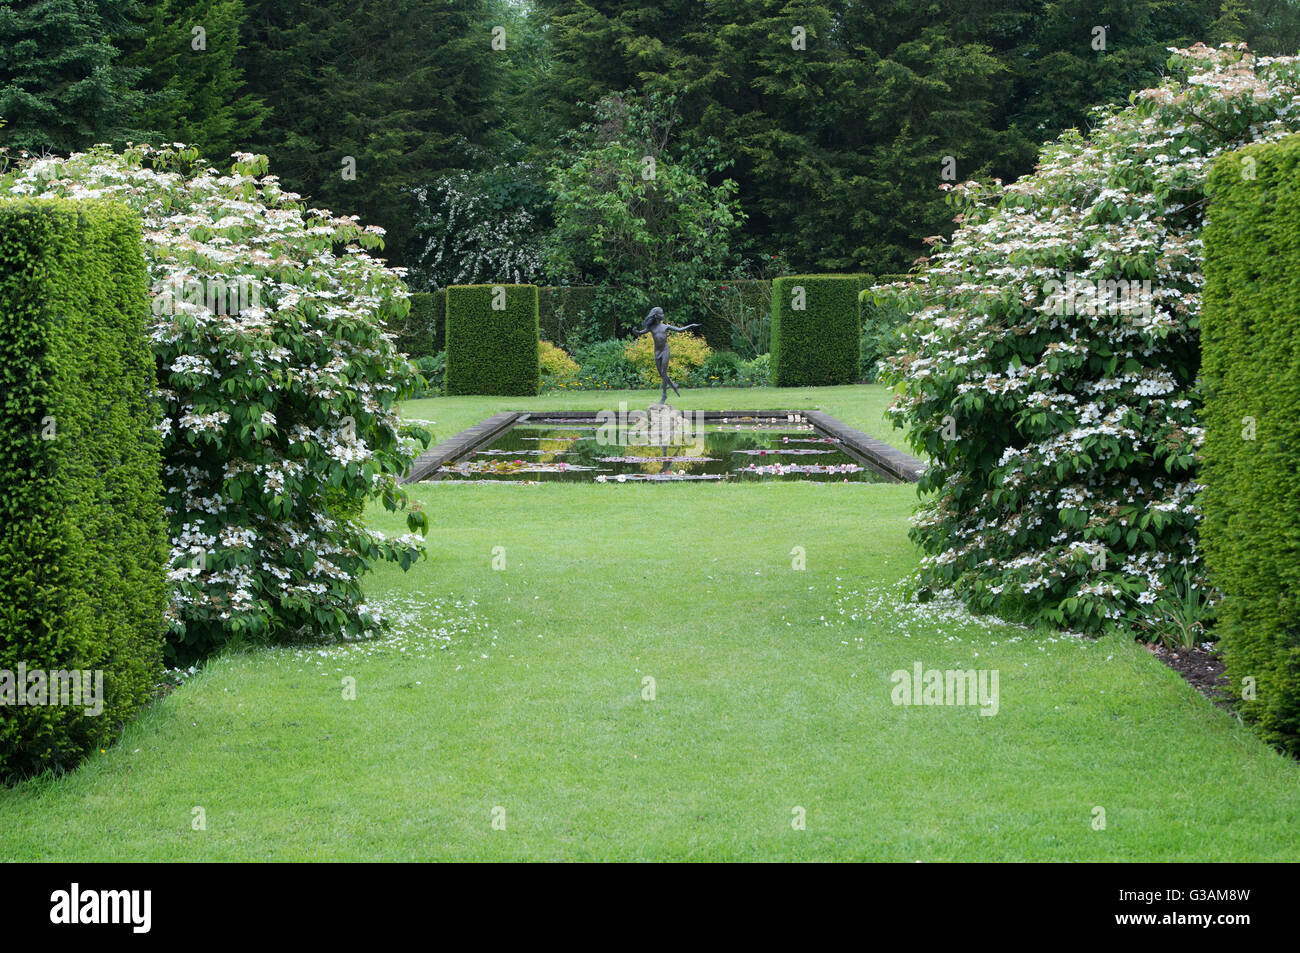 Ornamental garden statue and pond in the garden at Waterperry Gardens, Oxfordshire, England - Stock Image